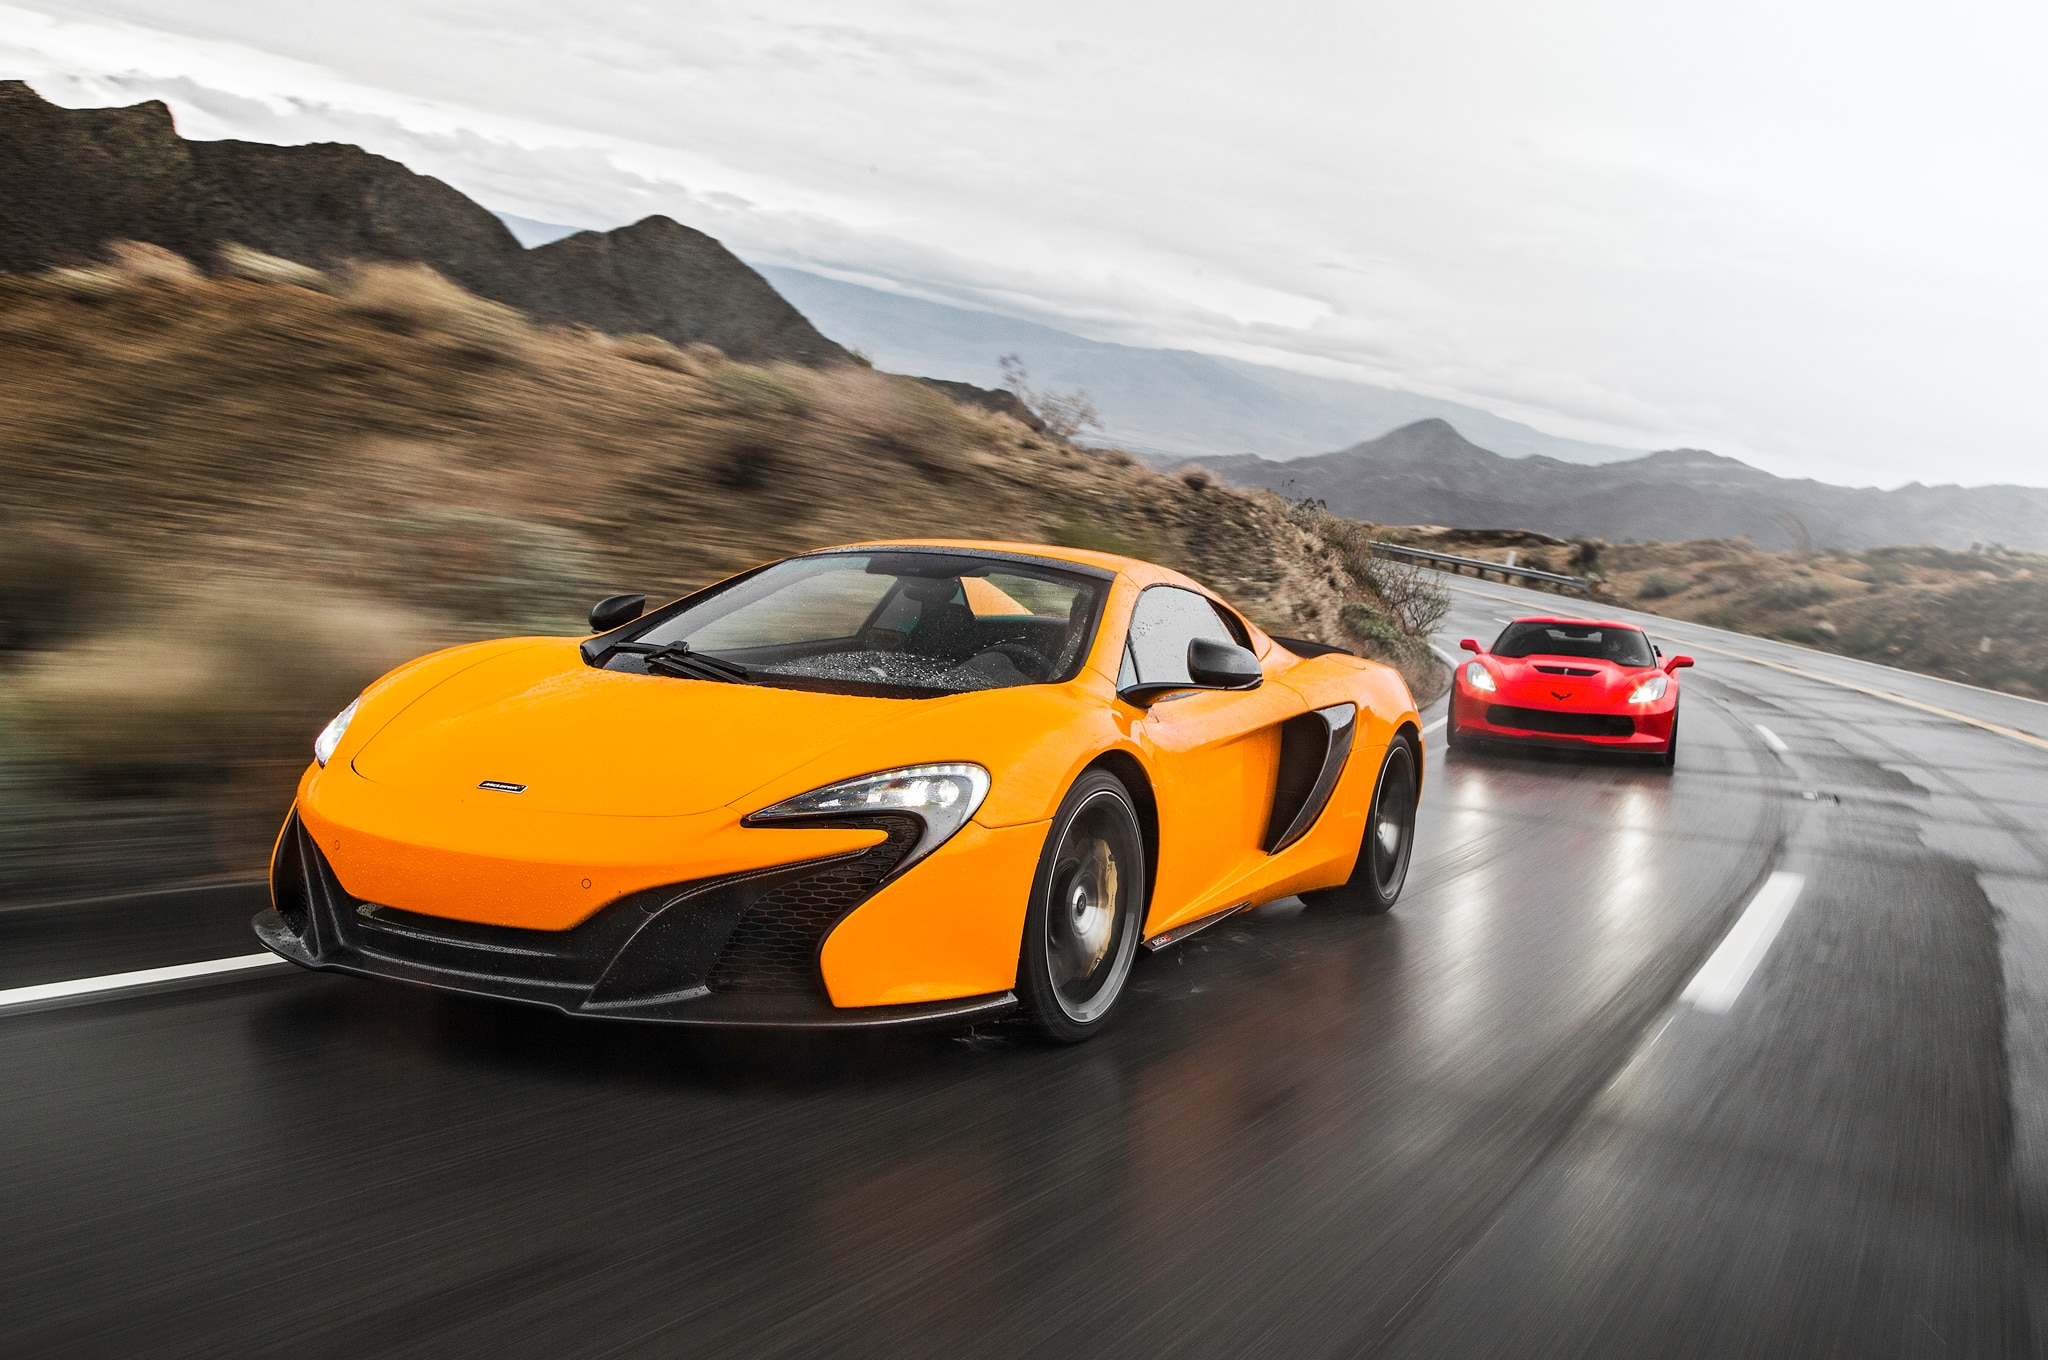 Corvette-Z06-vs.-McLaren-650S-Spider-06 Mesmerizing Porsche 911 Turbo Vs Z06 Cars Trend